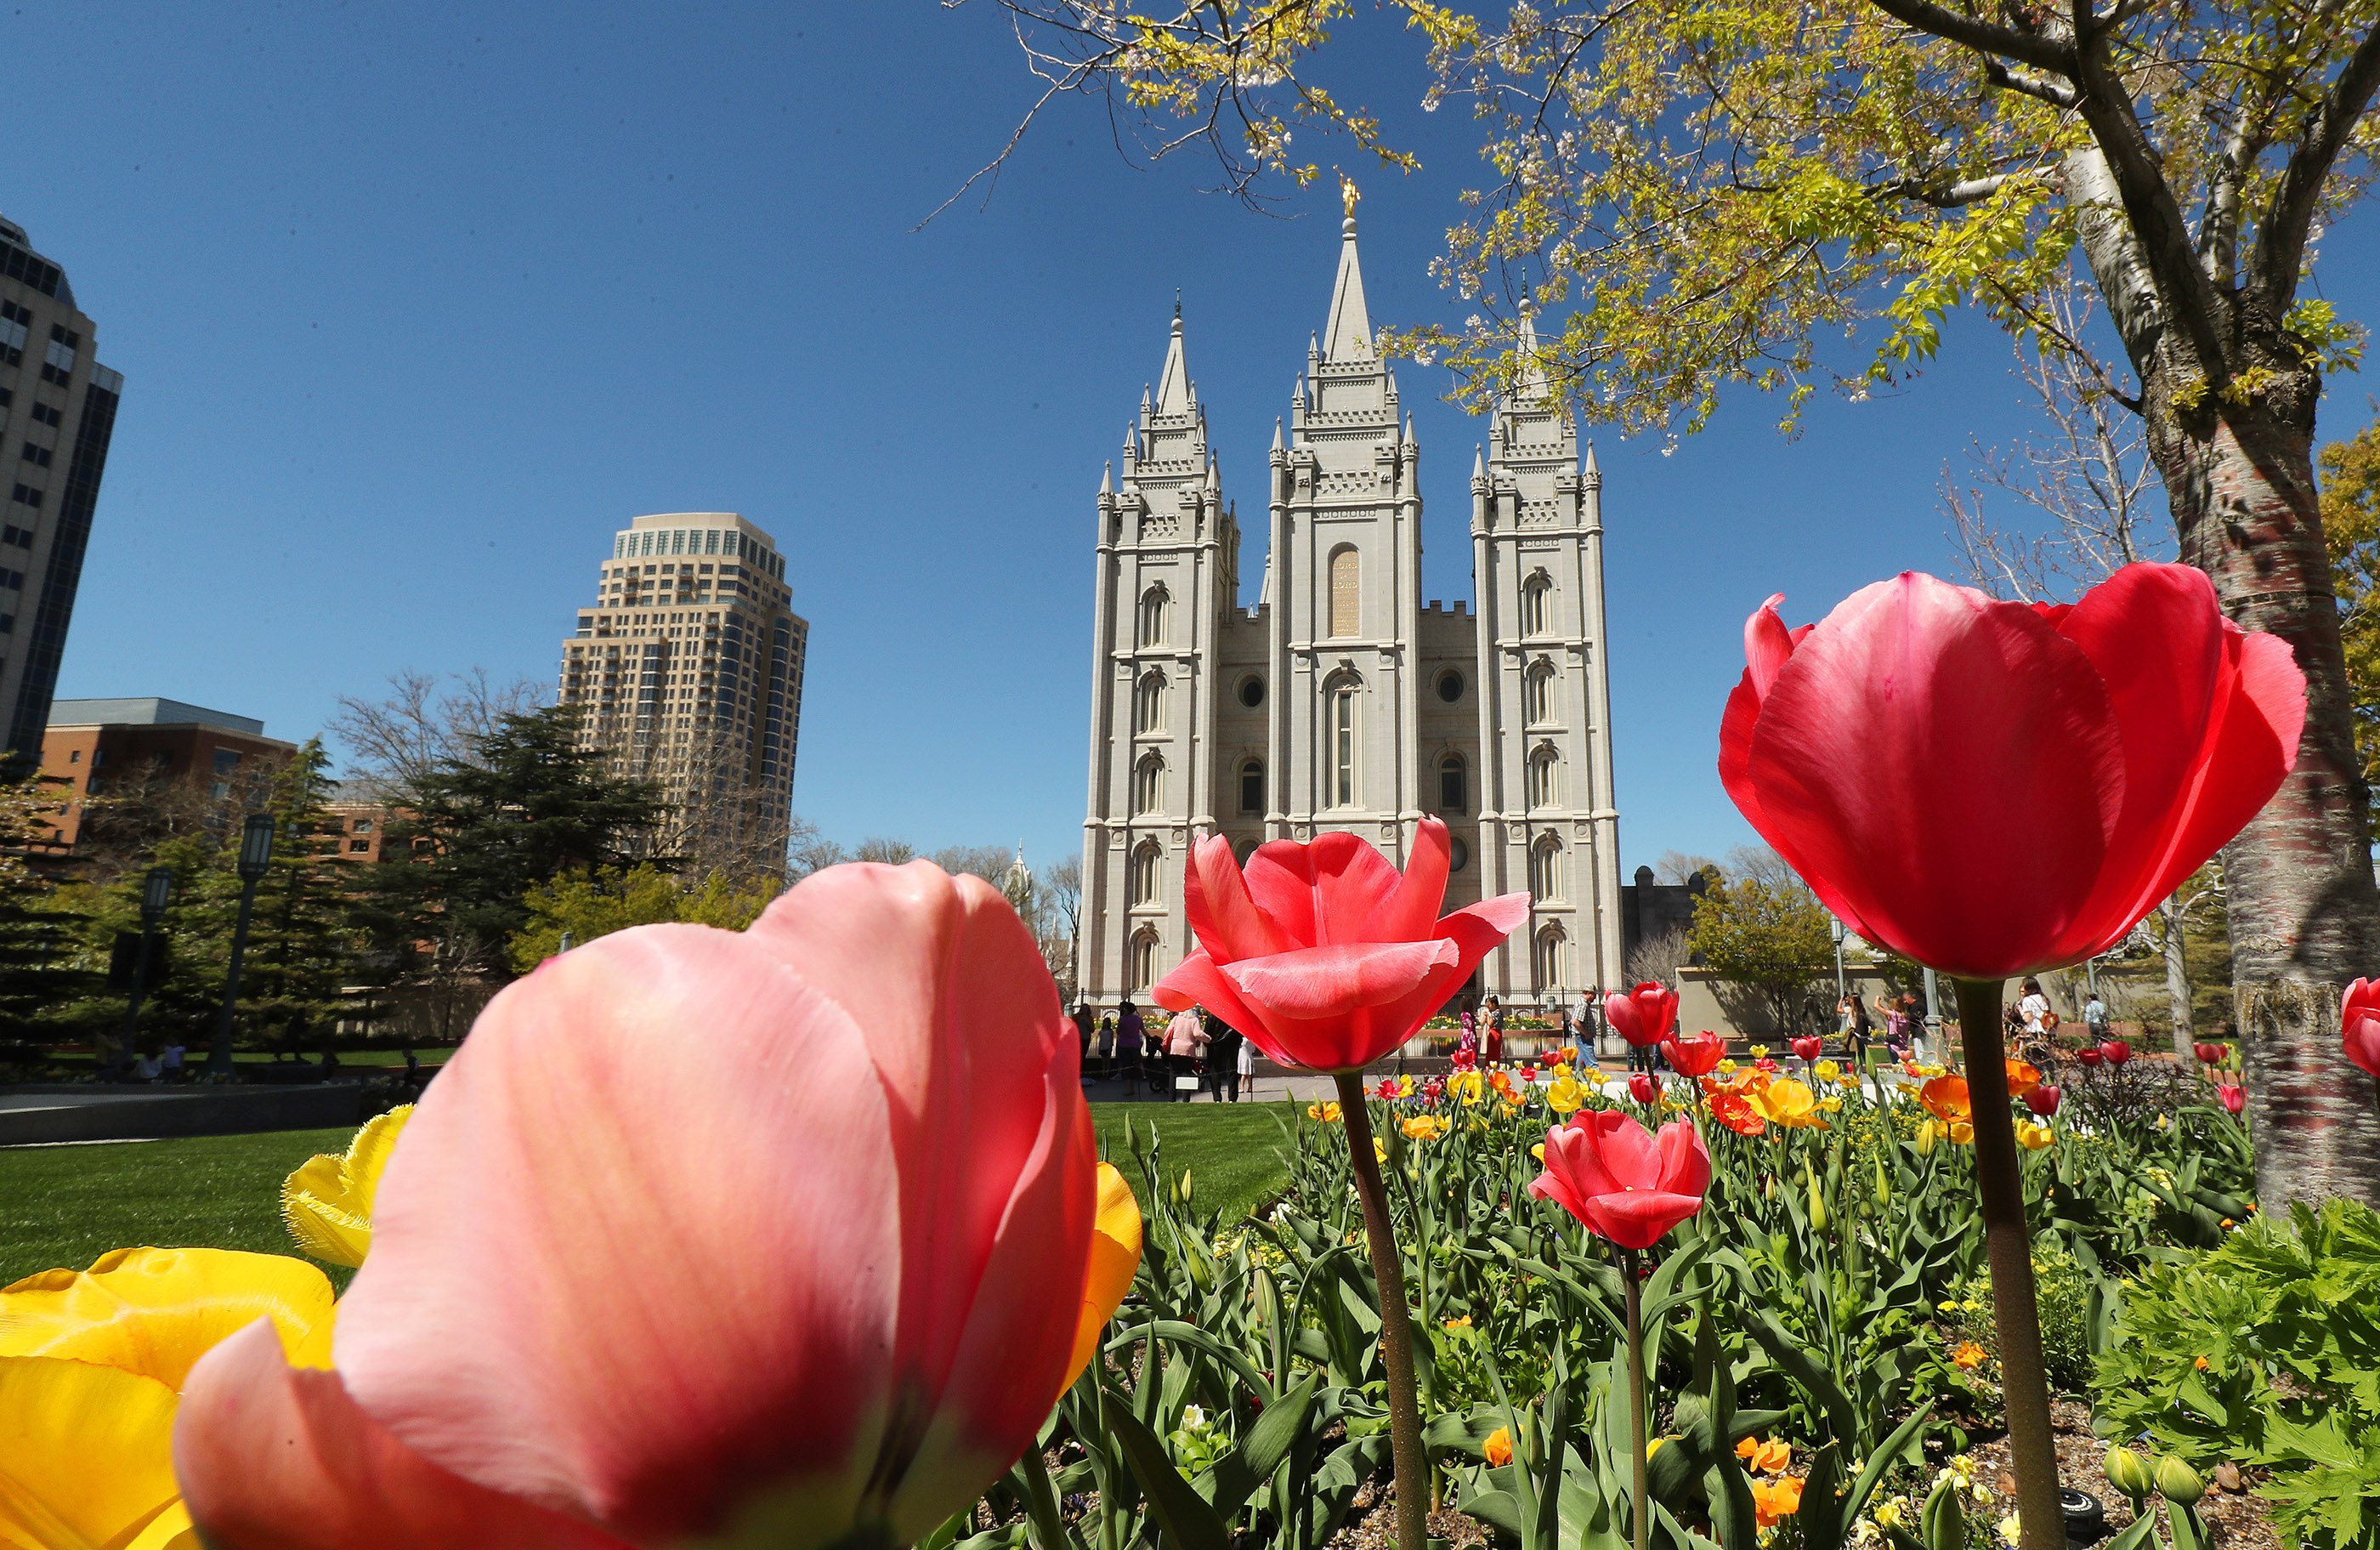 Flowers adorn the grounds surrounding the Salt Lake Temple in Salt Lake City on Friday, April 19, 2019. Leadership of The Church of Jesus Christ of Latter-day Saints announced renovation plans for the Salt Lake Temple and changes to the temple grounds and Temple Square.